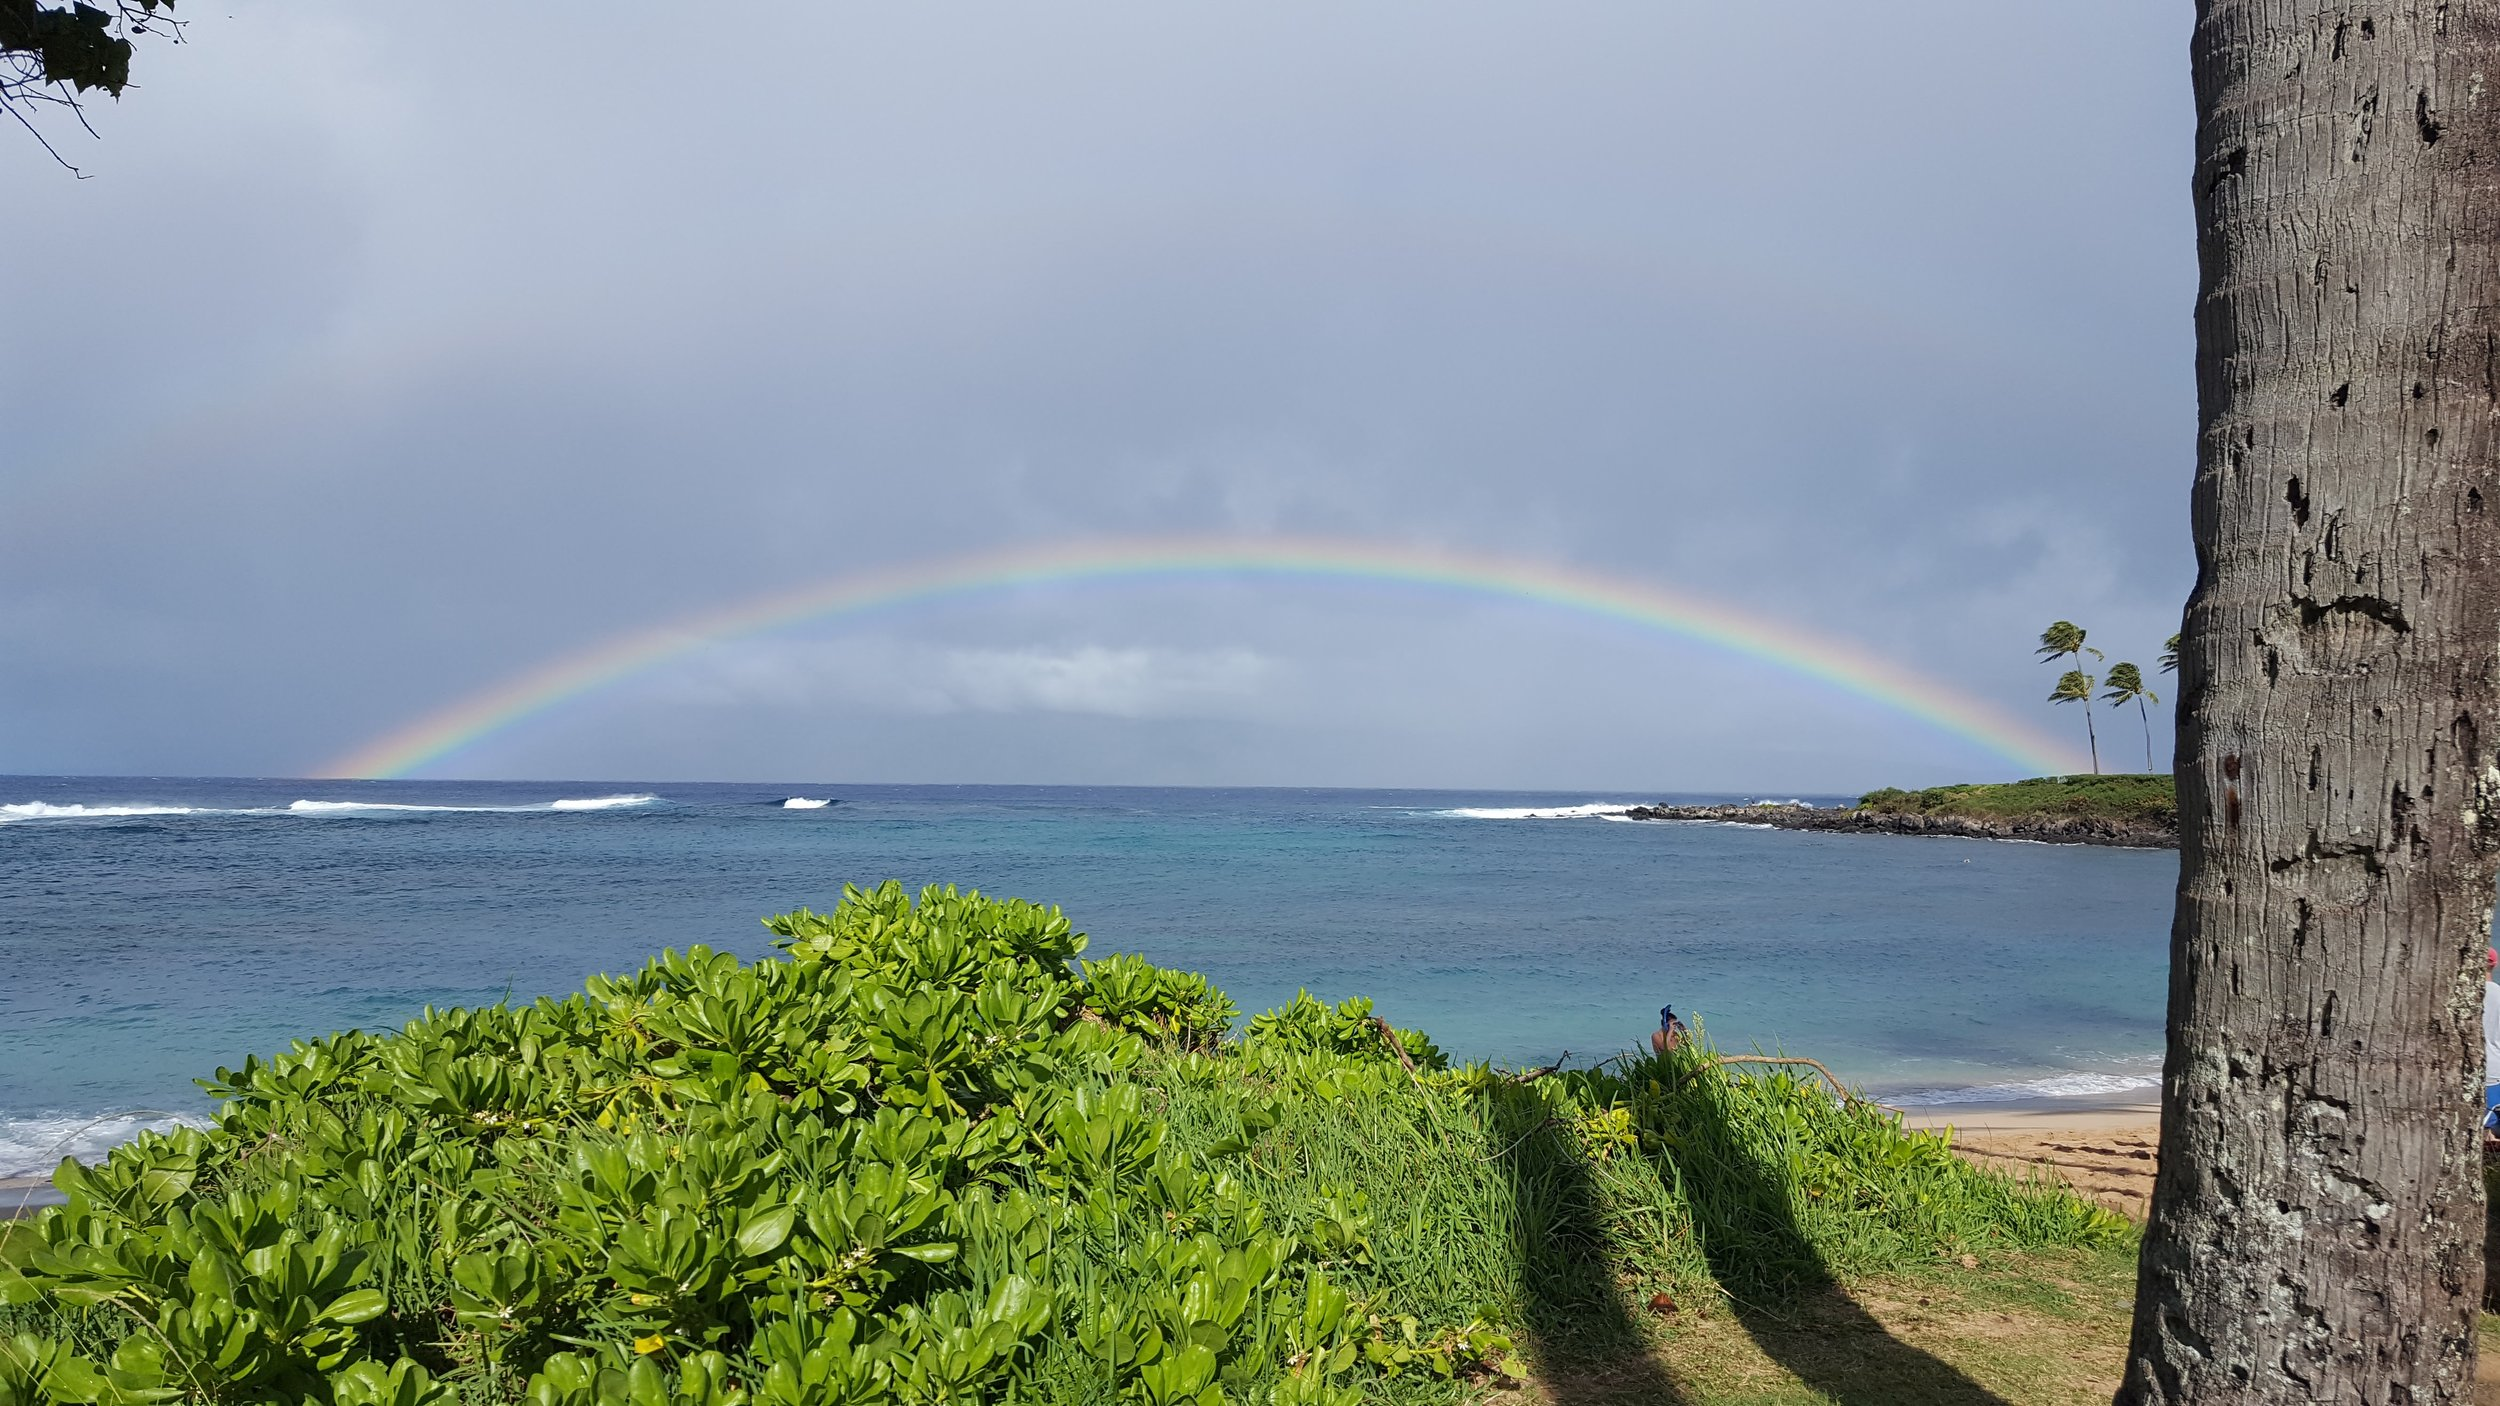 Rainbows are a regular occurrence in Kapalua